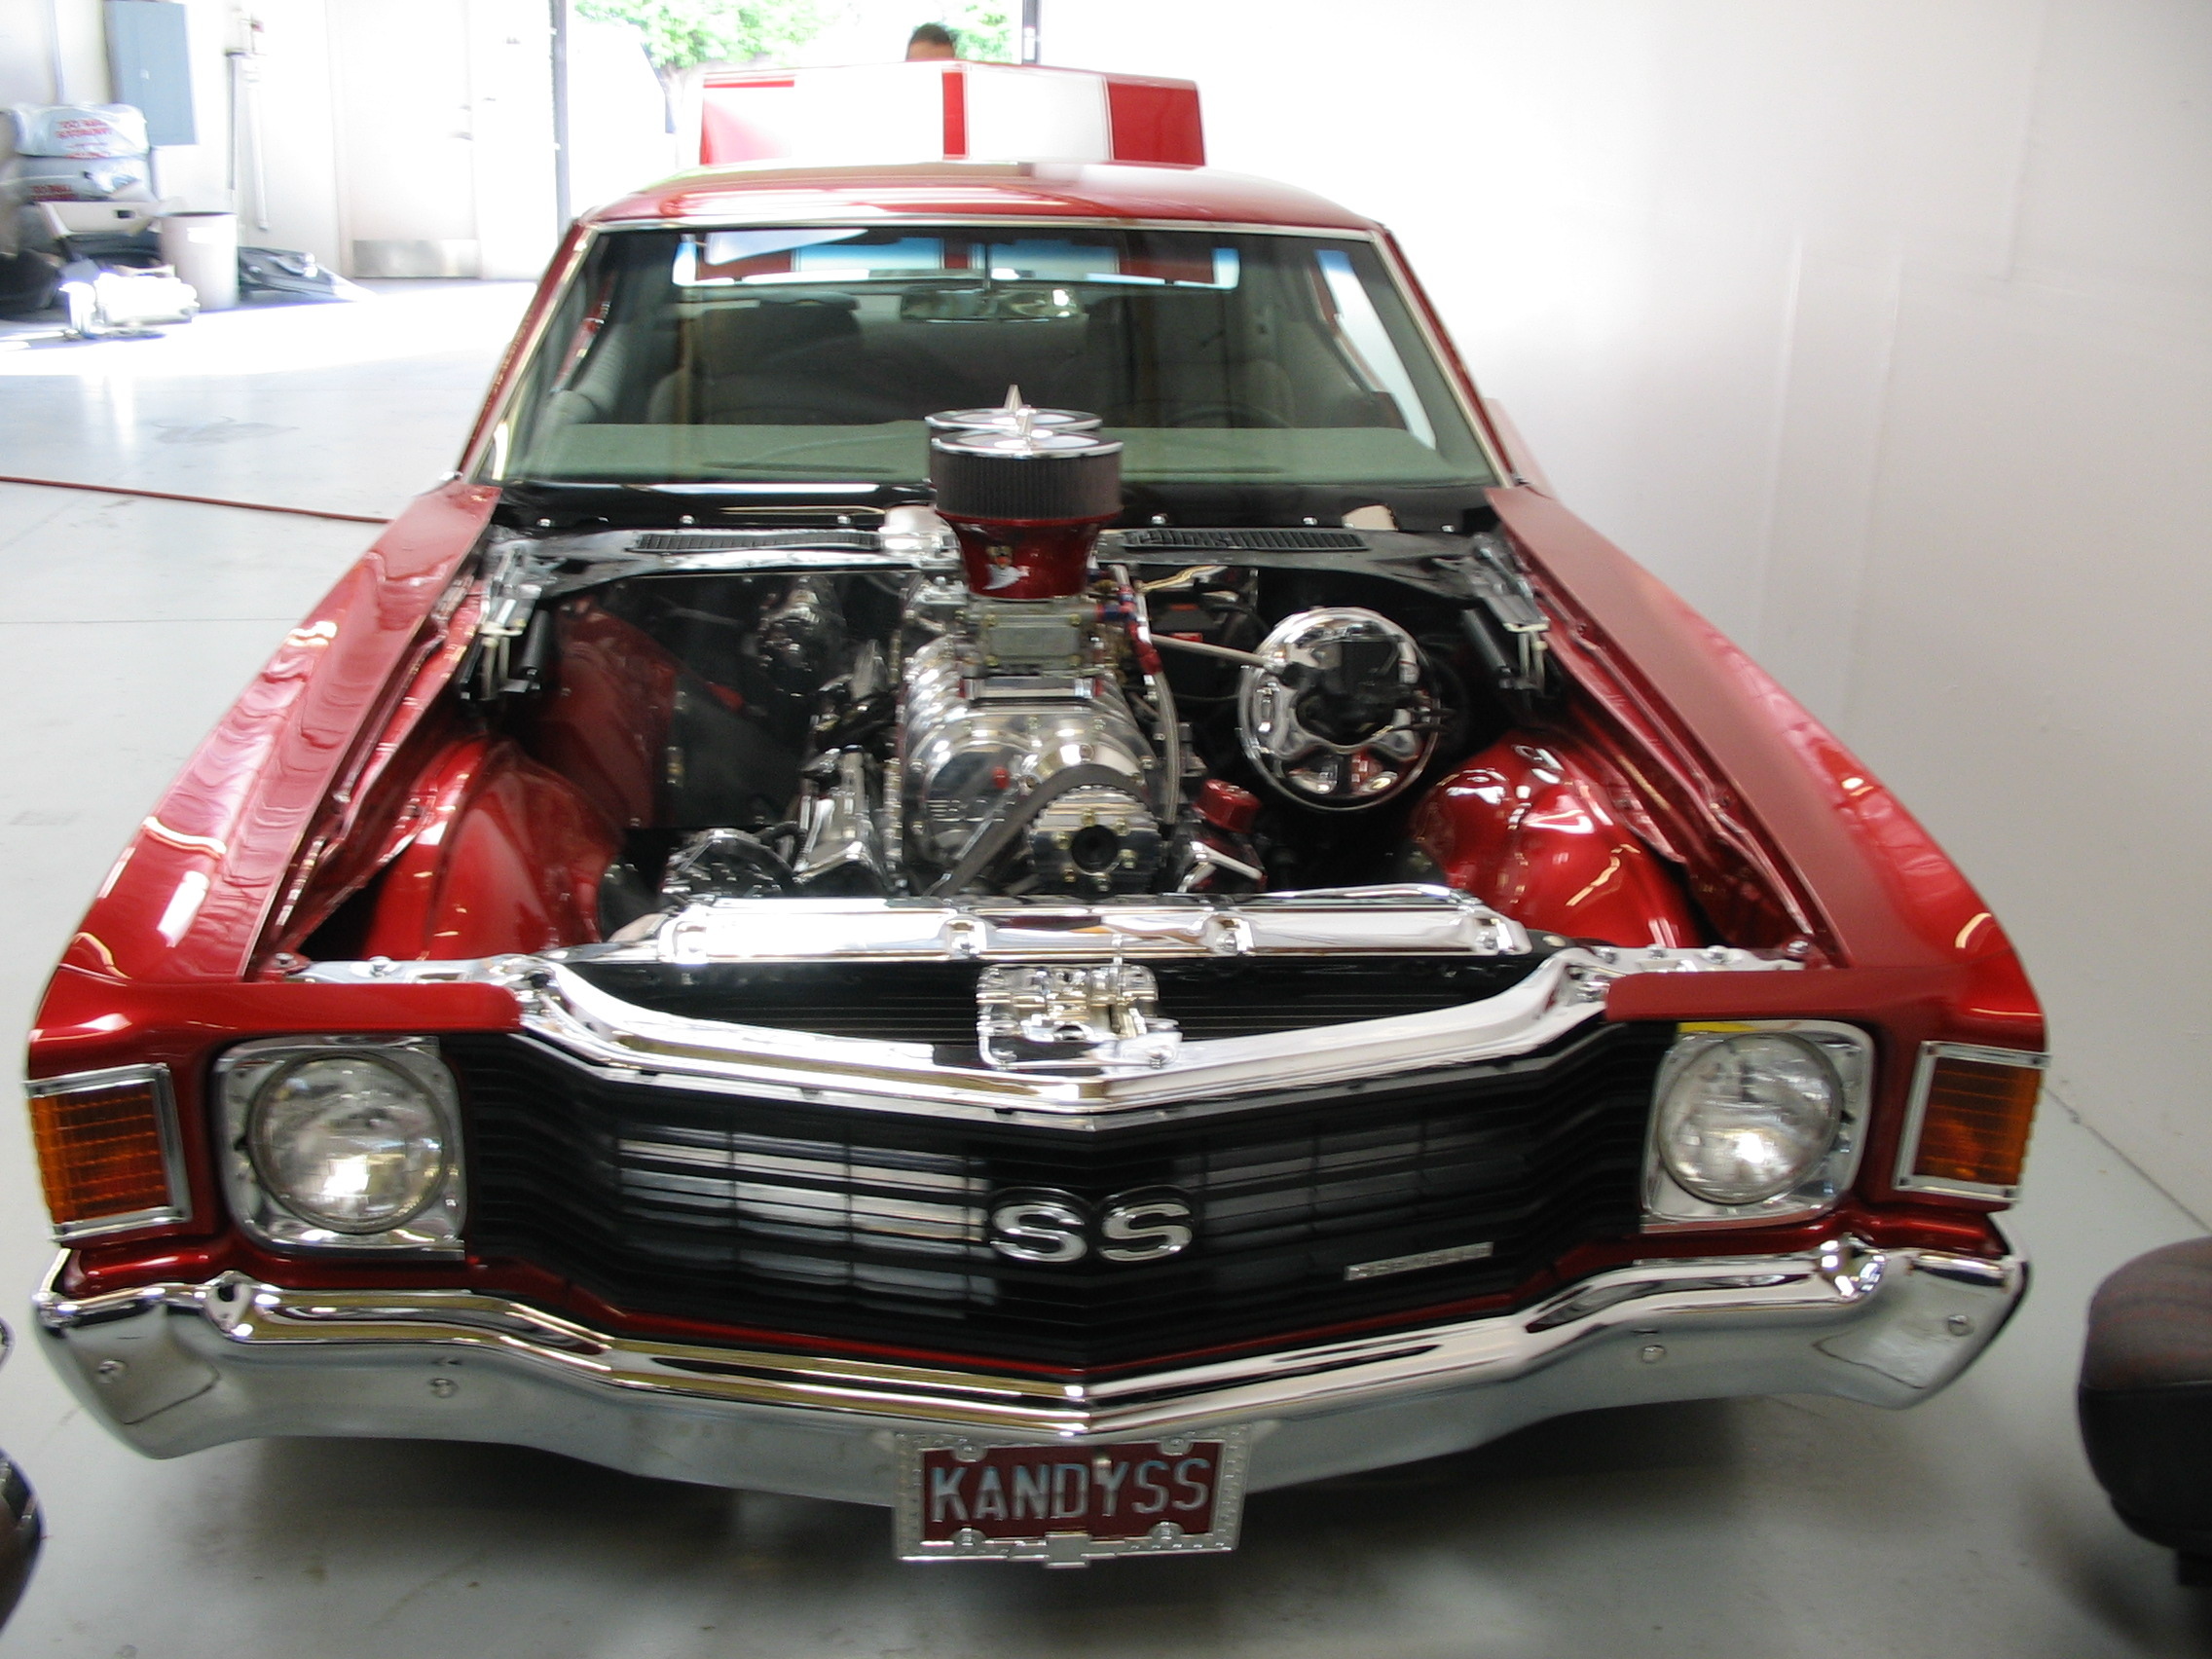 72' Chevelle process engine.jpg